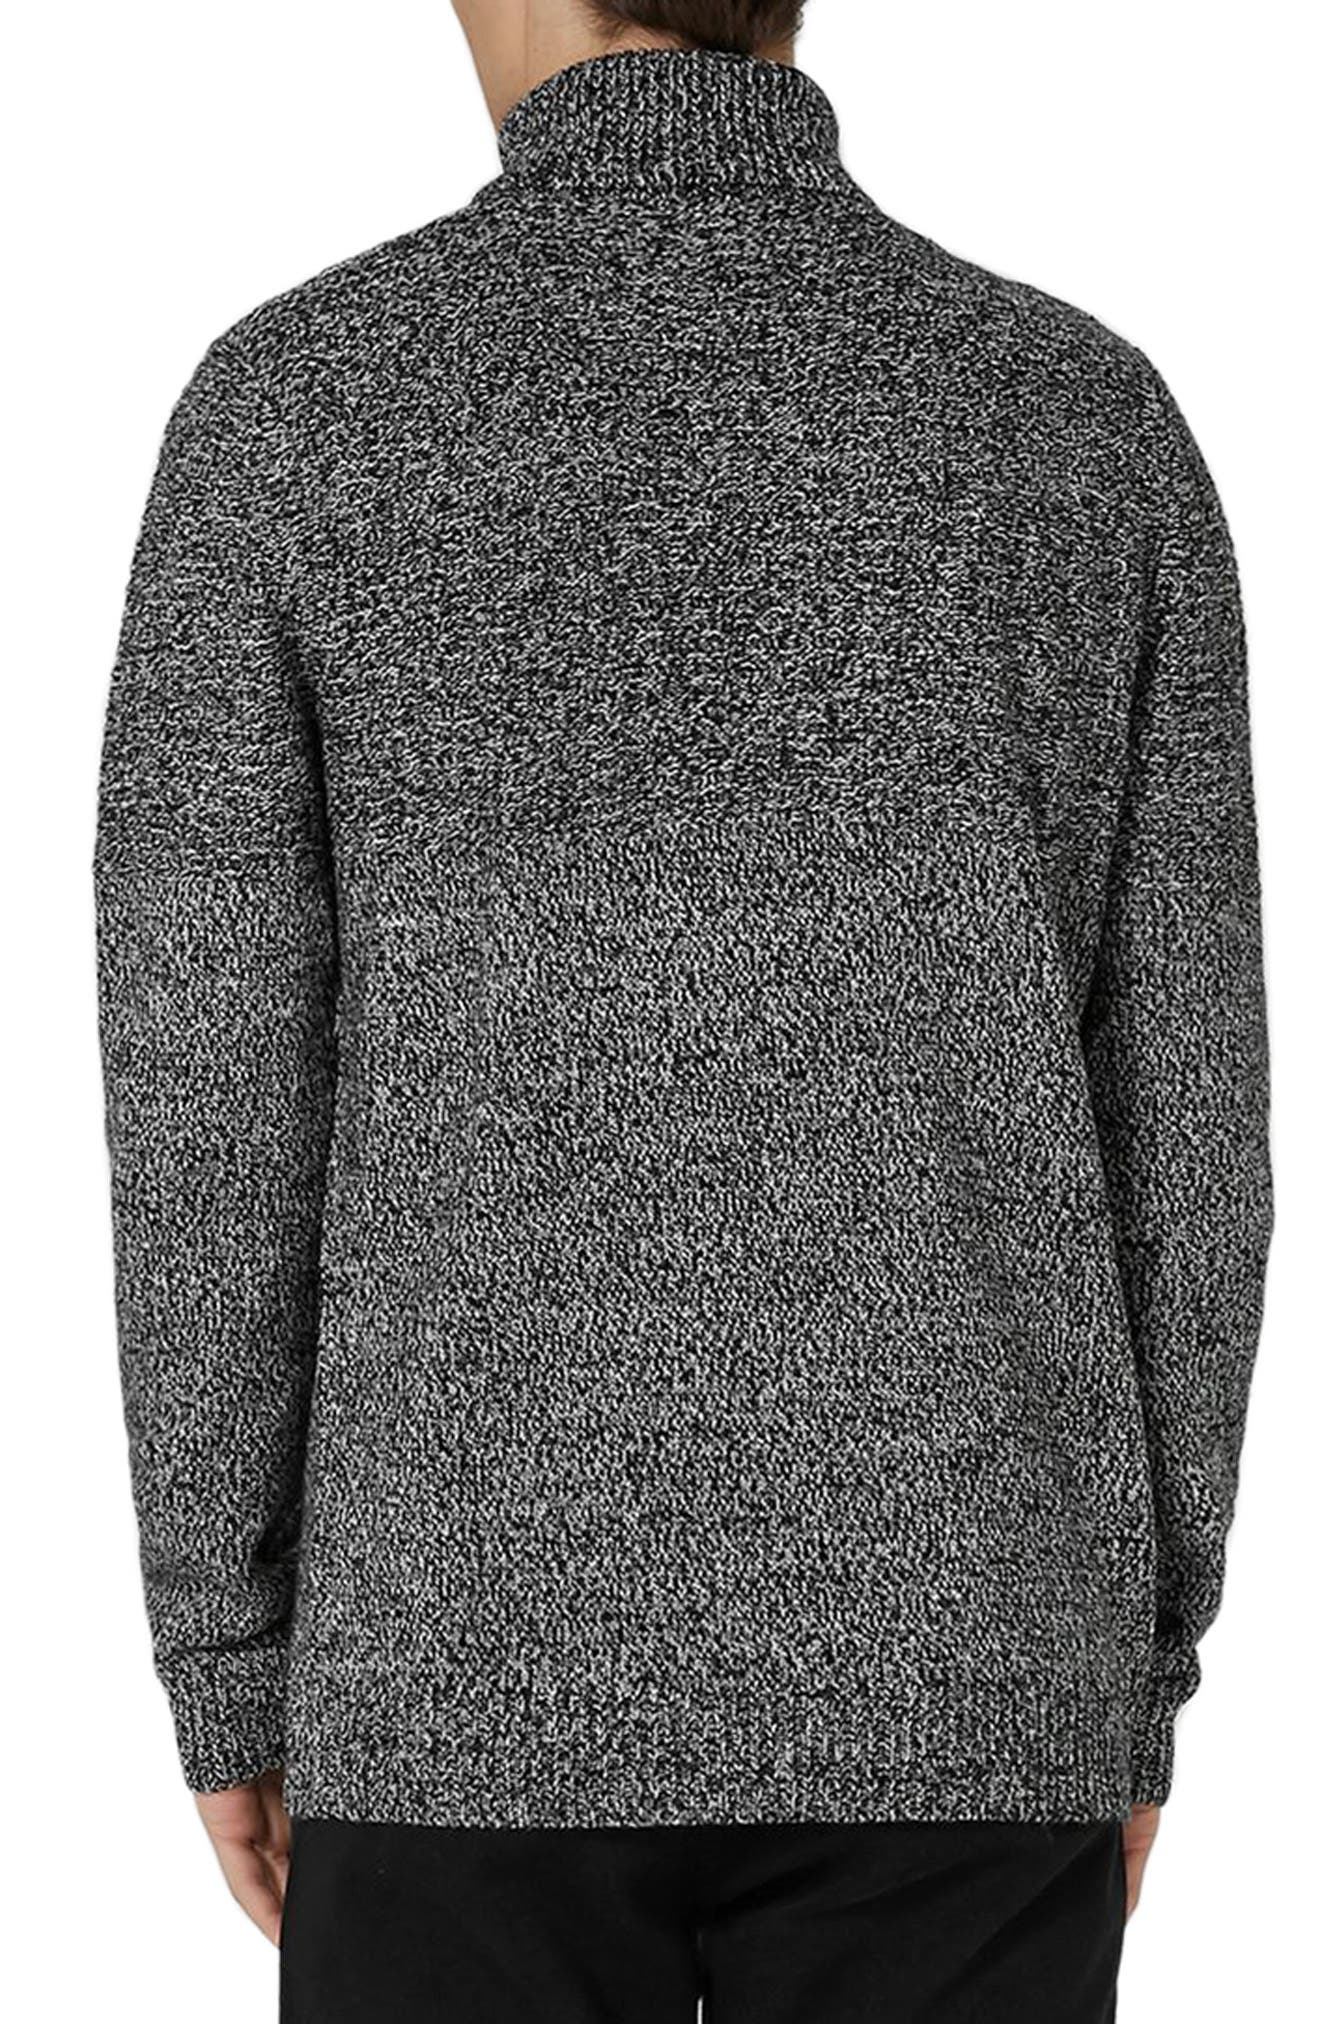 Alternate Image 2  - Topman Twist Roll Neck Sweater